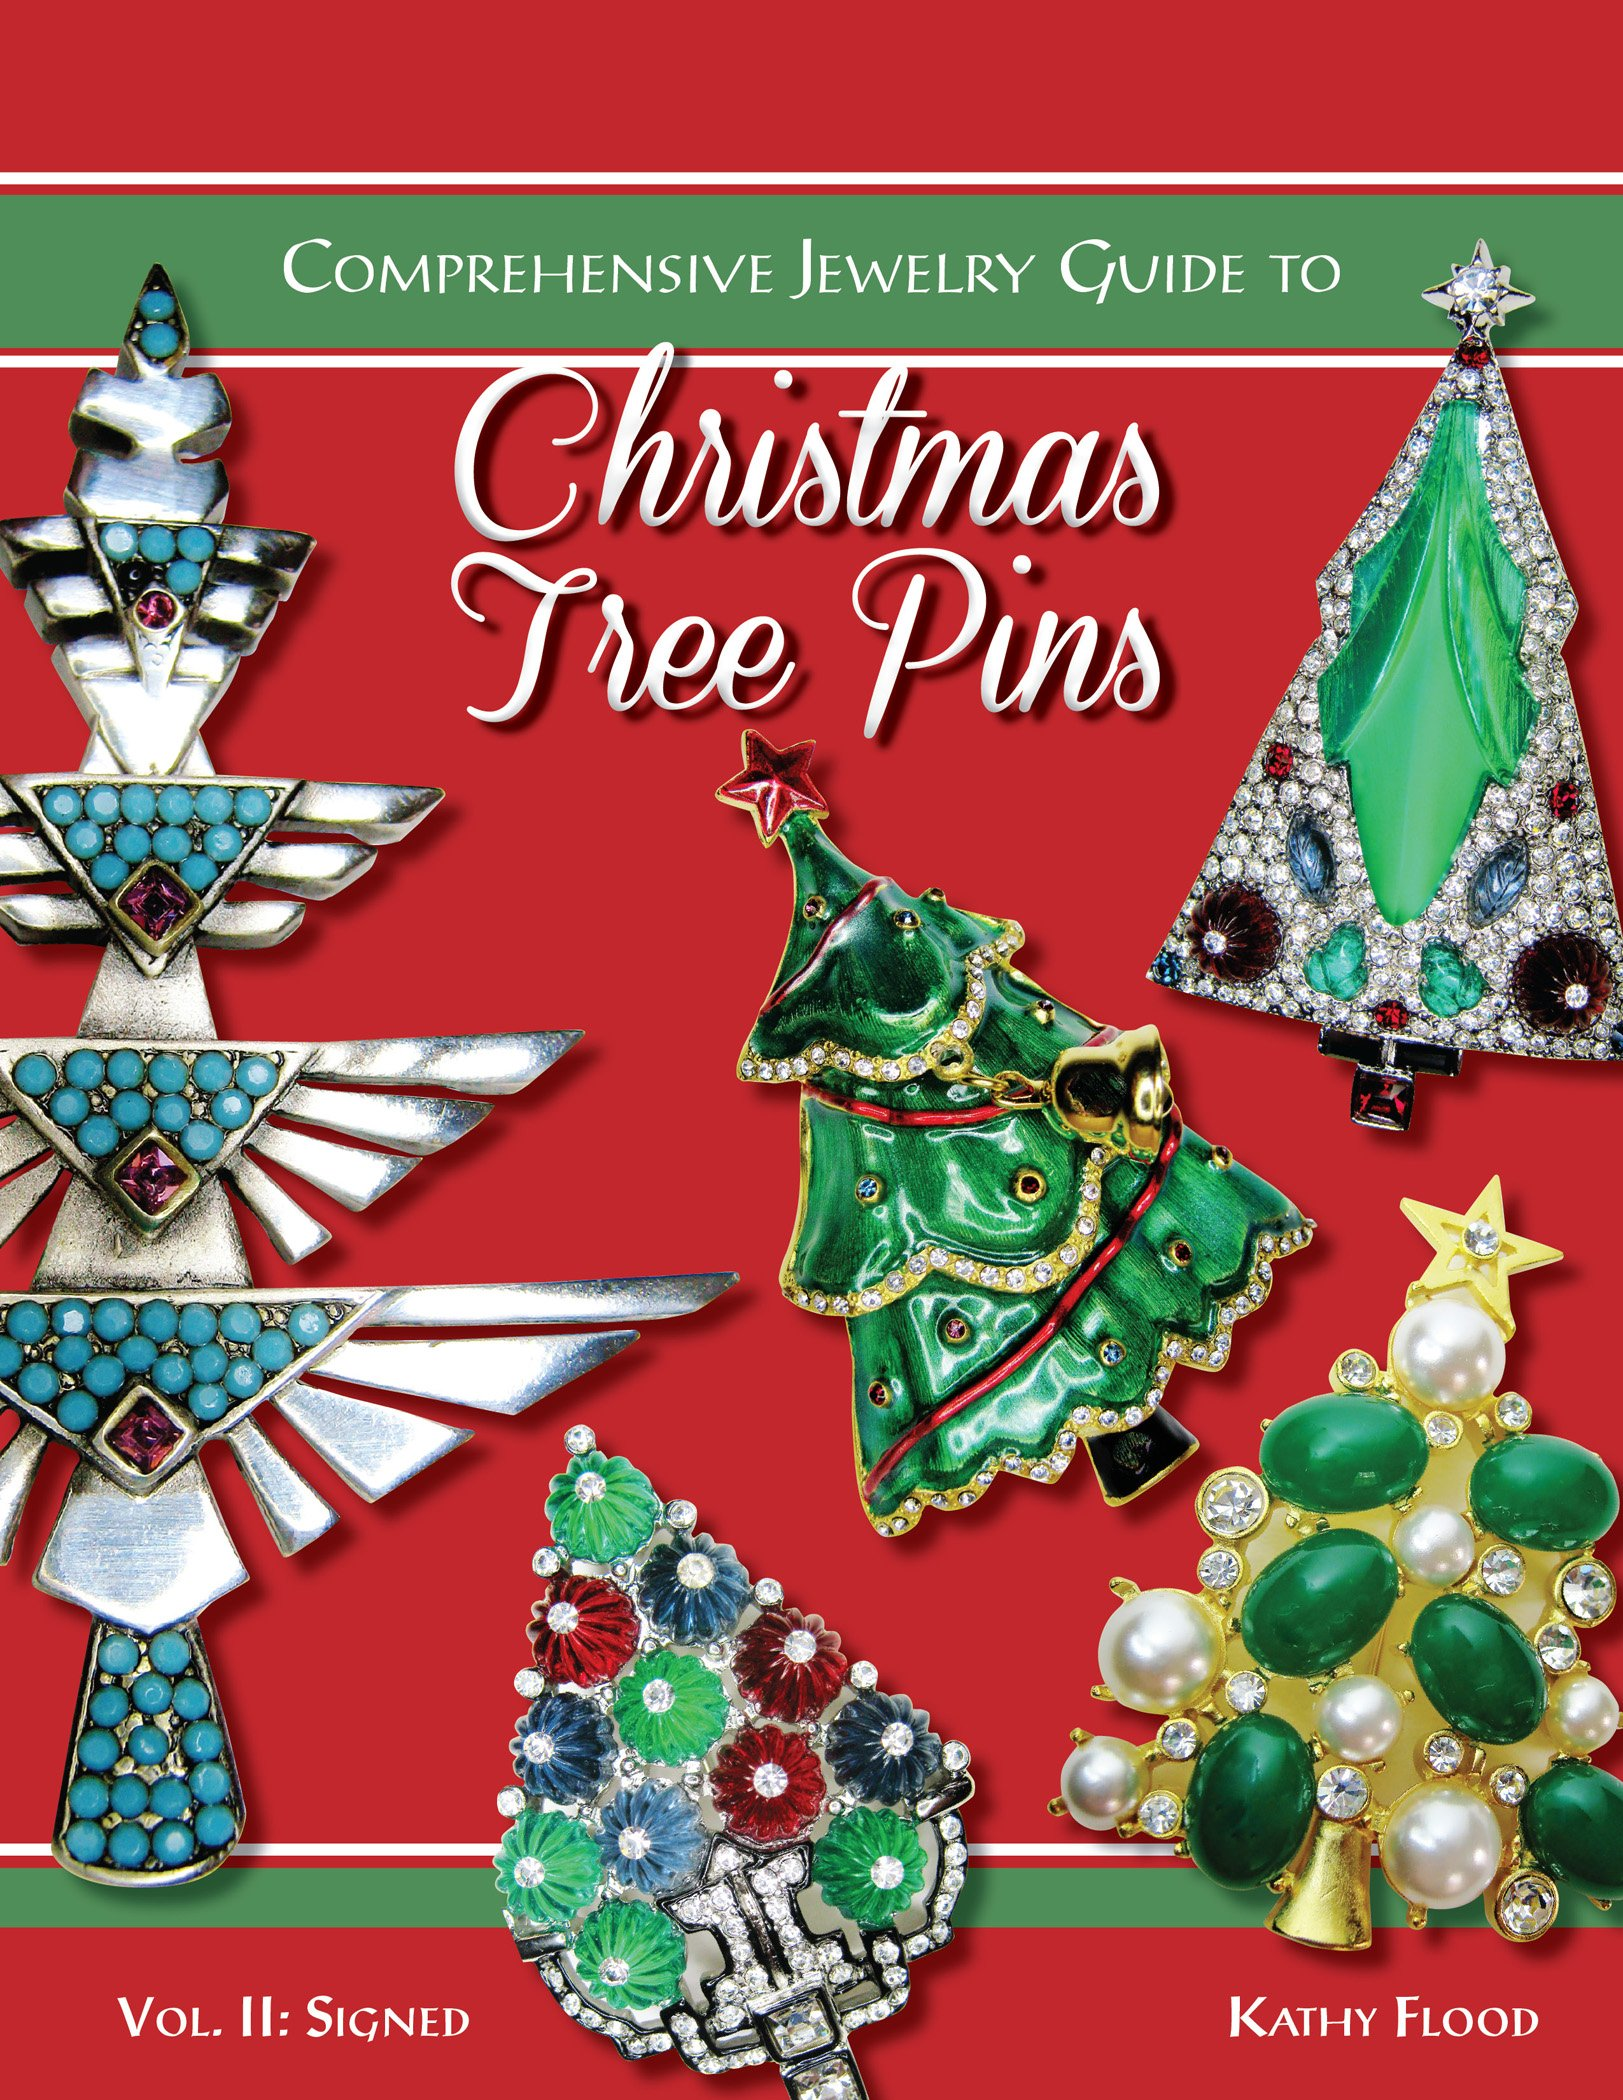 Comprehensive Jewelry Guide to Christmas Tree Pins